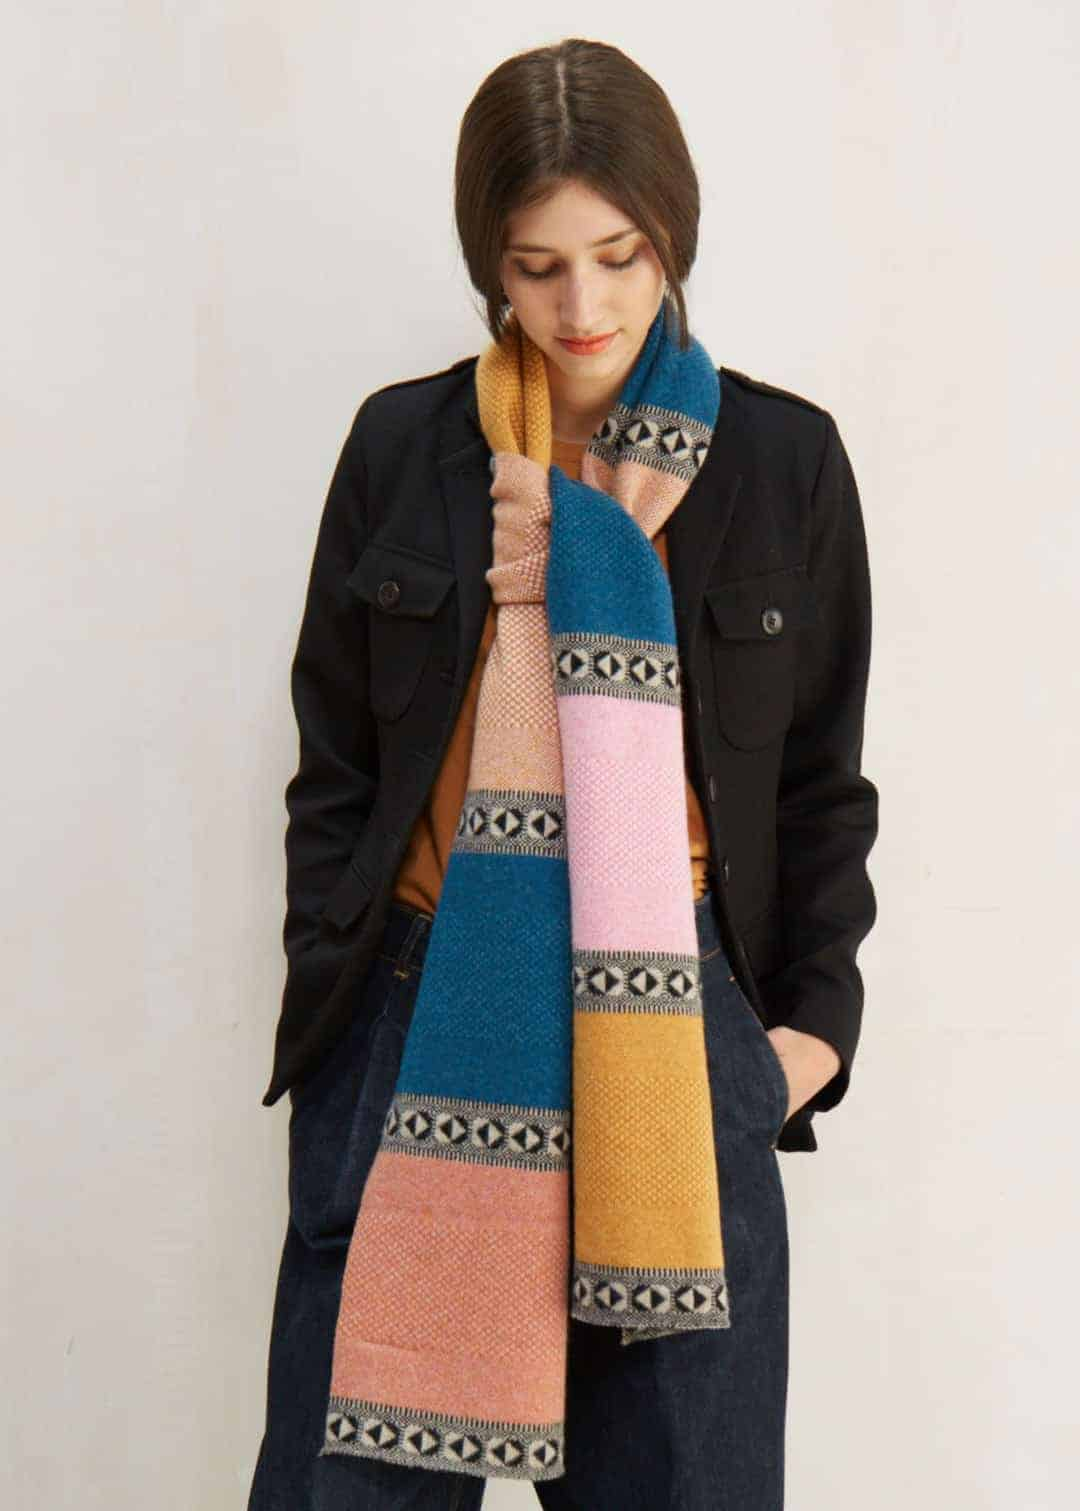 love this quinton chadwick tweed block scarf made in scotland using pure lambswool. Click through for more ethical gift ideas for Christmas you'll love #ShopEhicalInstead #ethicalgifts #madeinbritain #frombritainwithlove #sustainablegifts #ethicalhour #slowfashion #ethicalfashion